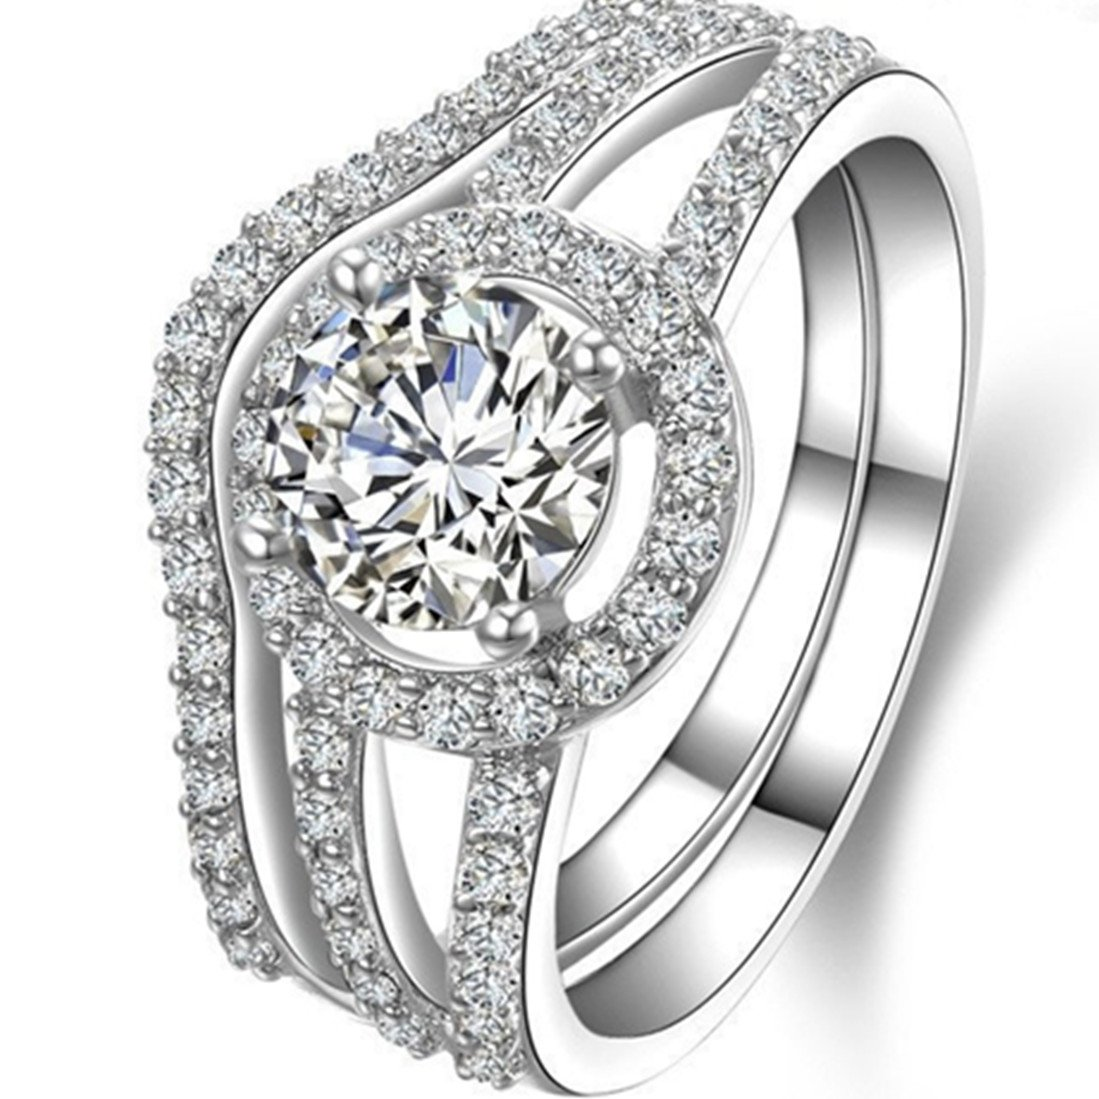 Sterling Silver 2CT Engagement Ring NSCD Simulated Diamond Round Wedding Rings Set for Women